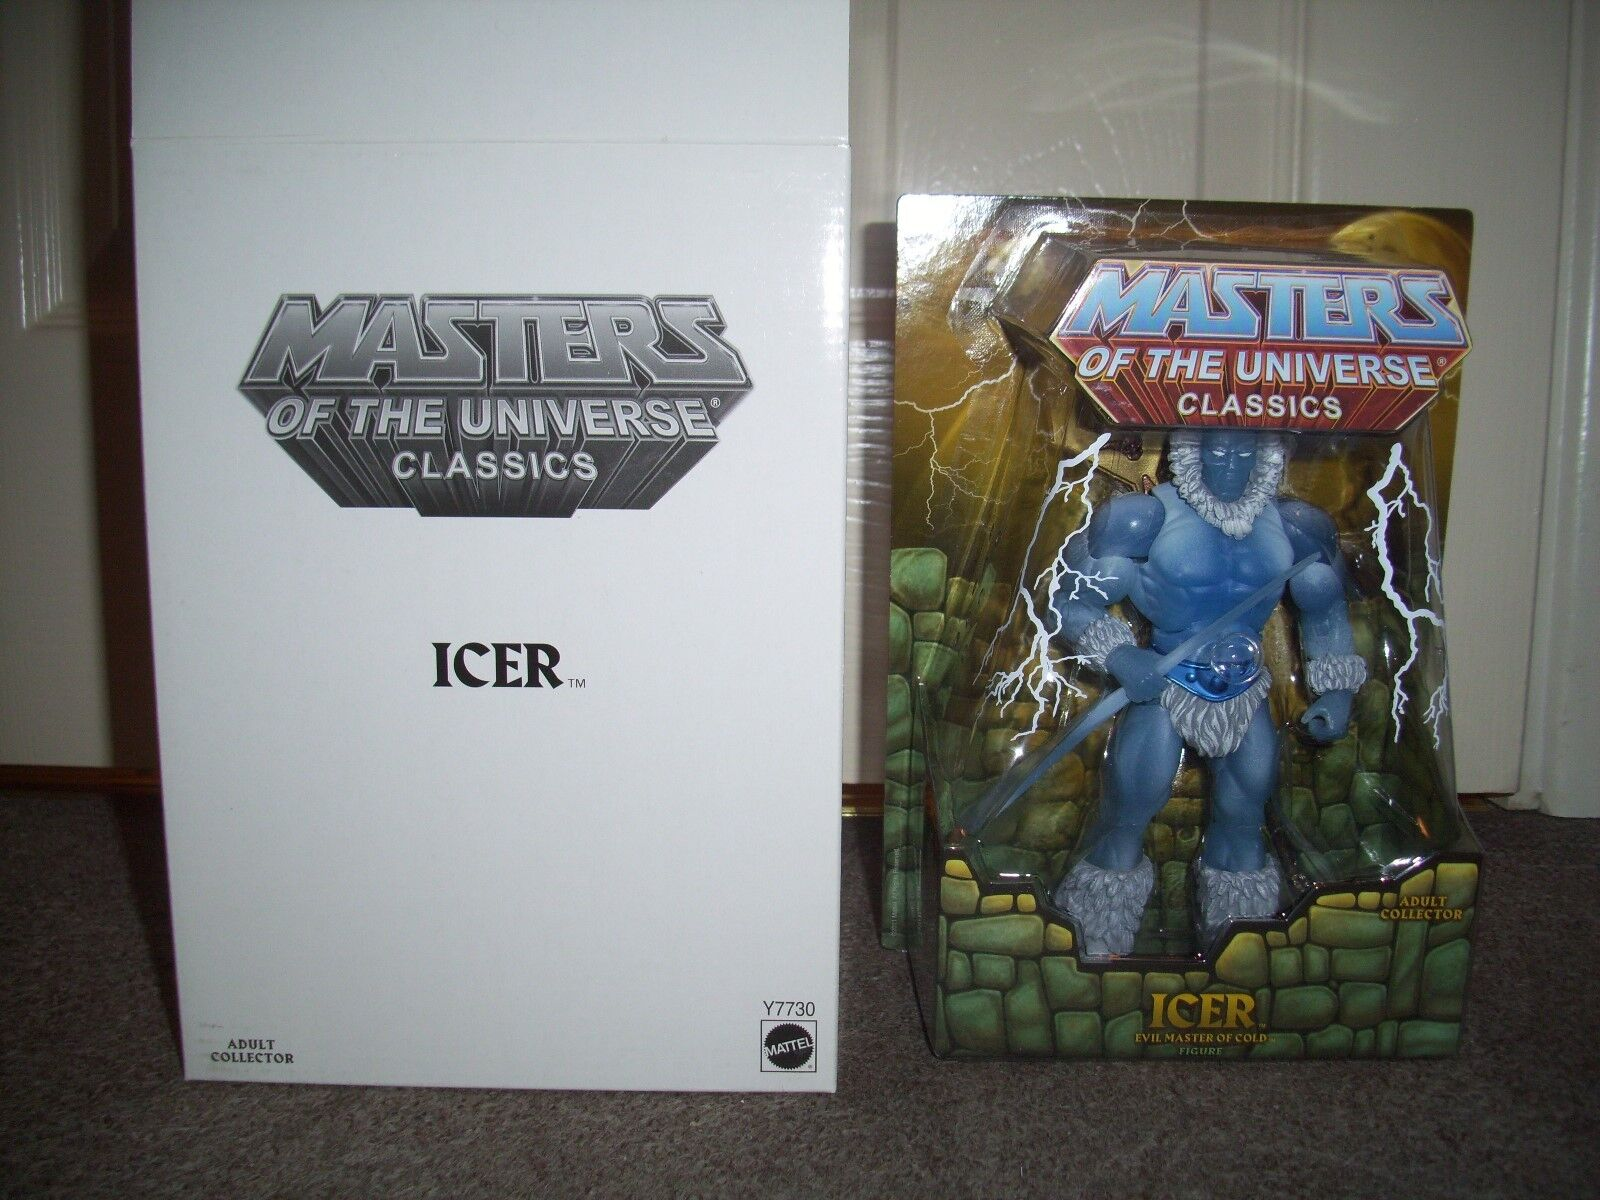 MASTERS OF THE UNIVERSE CLASSICS ICER figure. still sealed